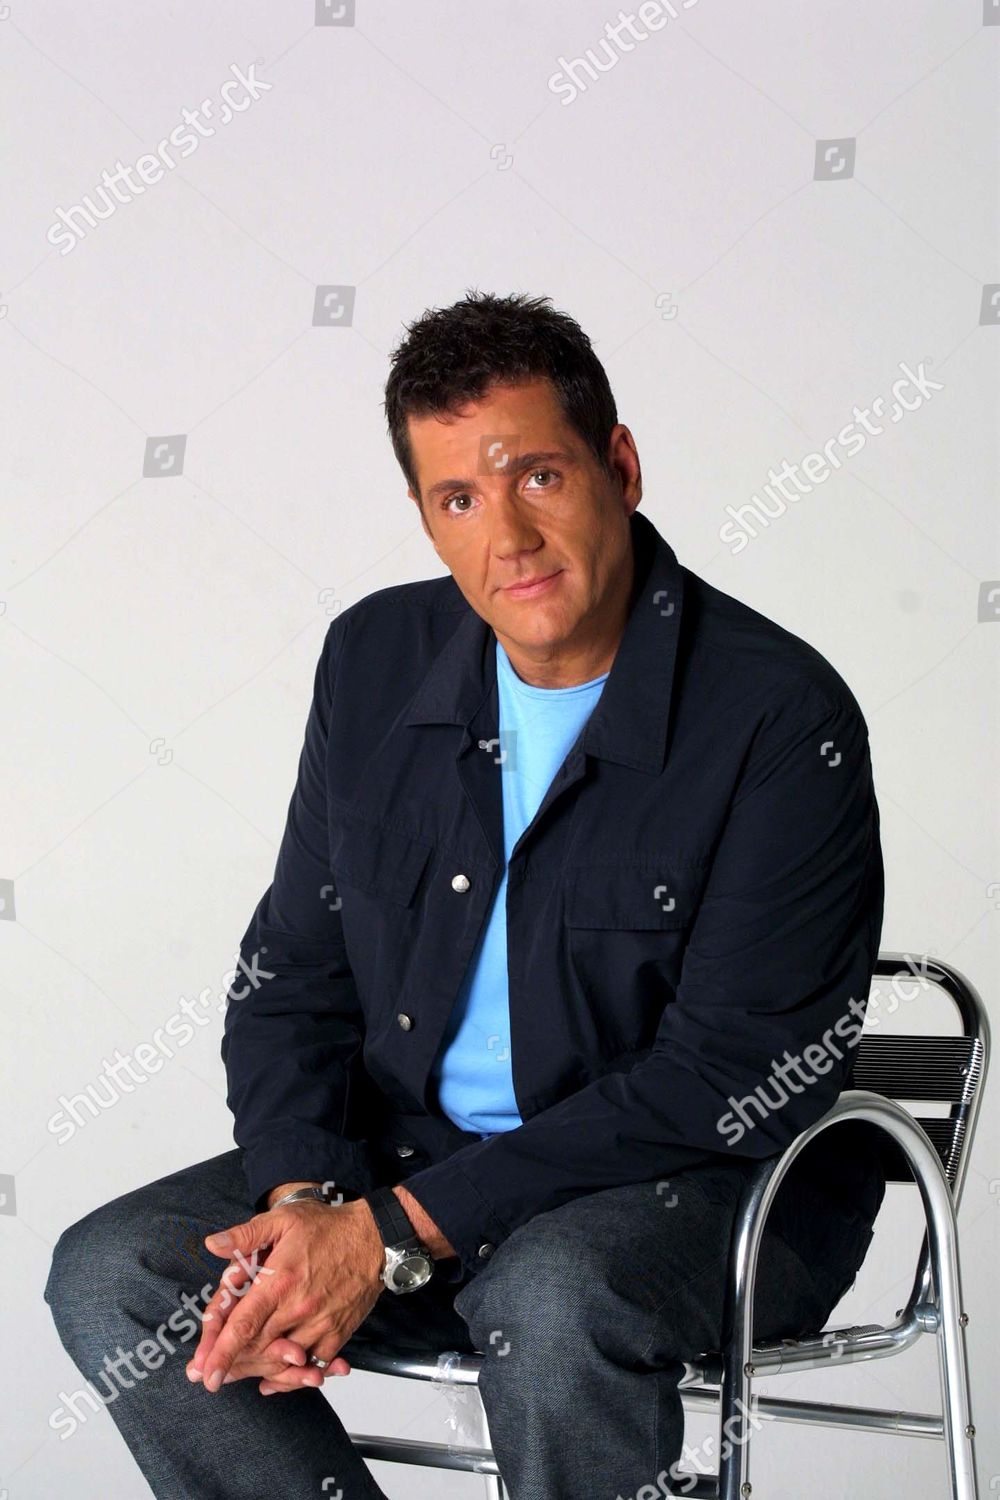 Dale Winton Editorial Stock Photo - Stock Image | Shutterstock